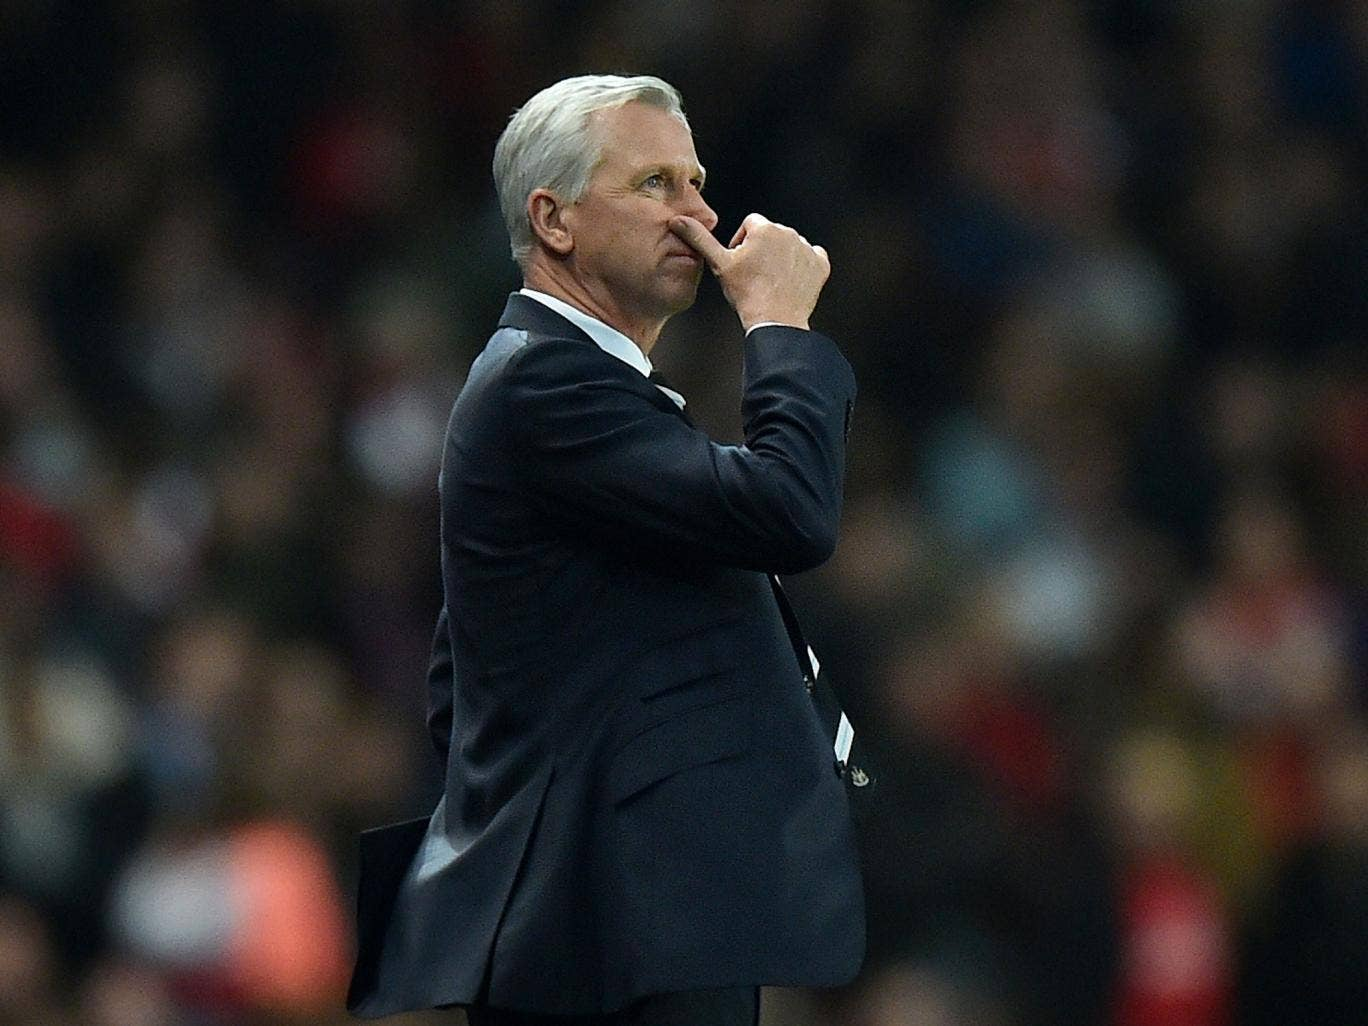 Alan Pardew returned to the touchline for the first time after a seven-match ban